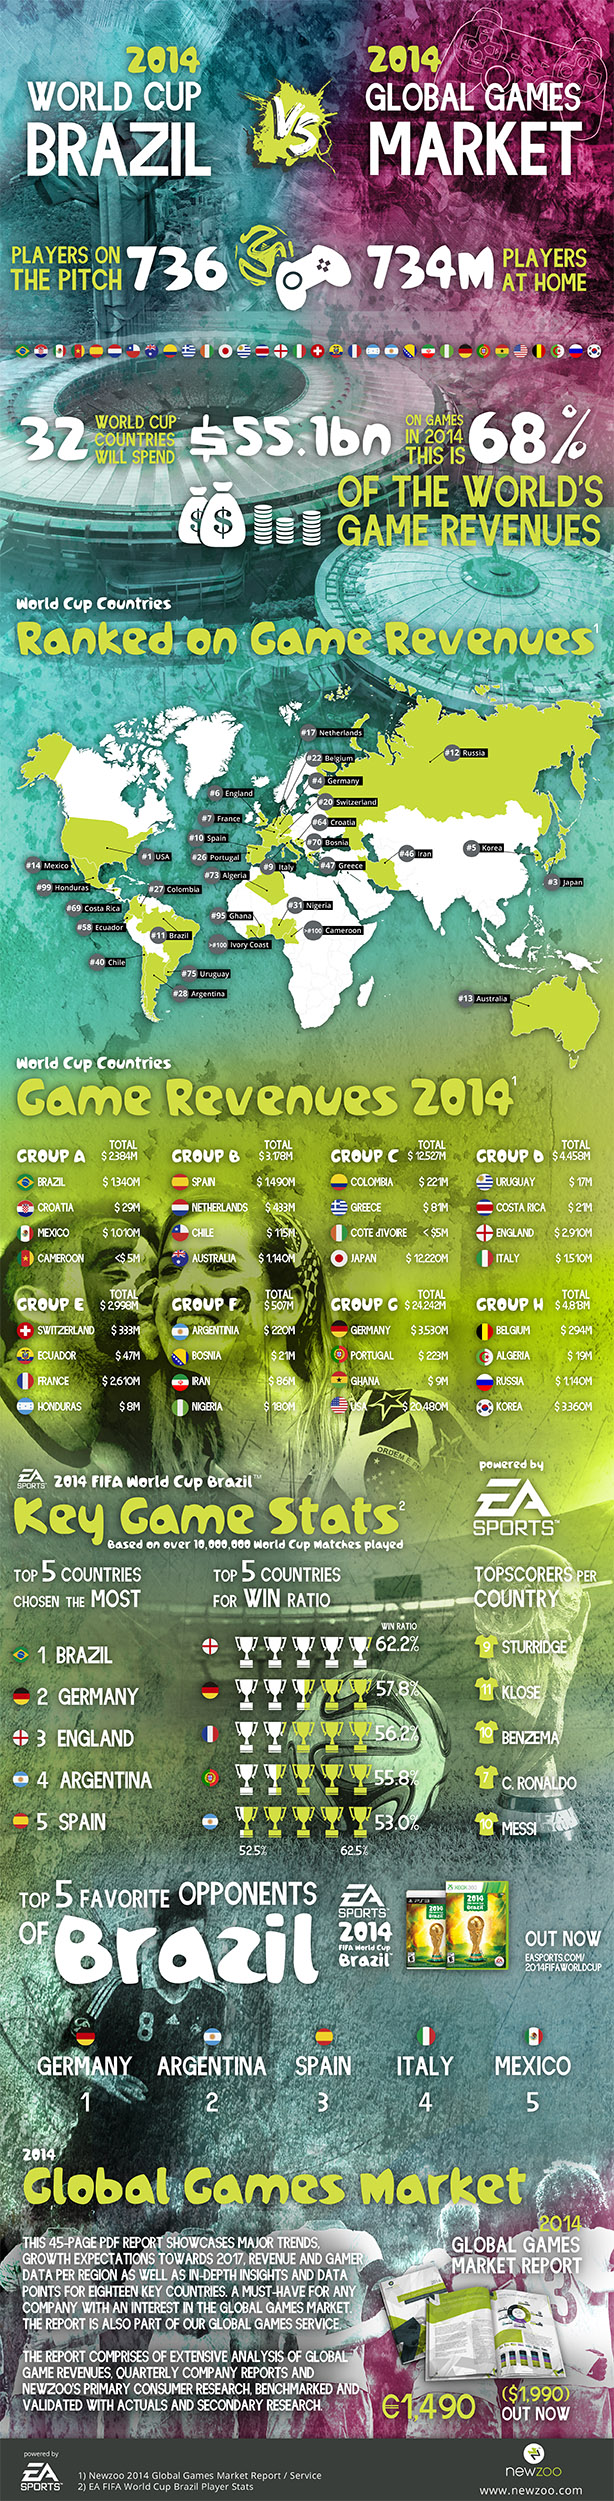 Brazil World Cup 2014 Infographic